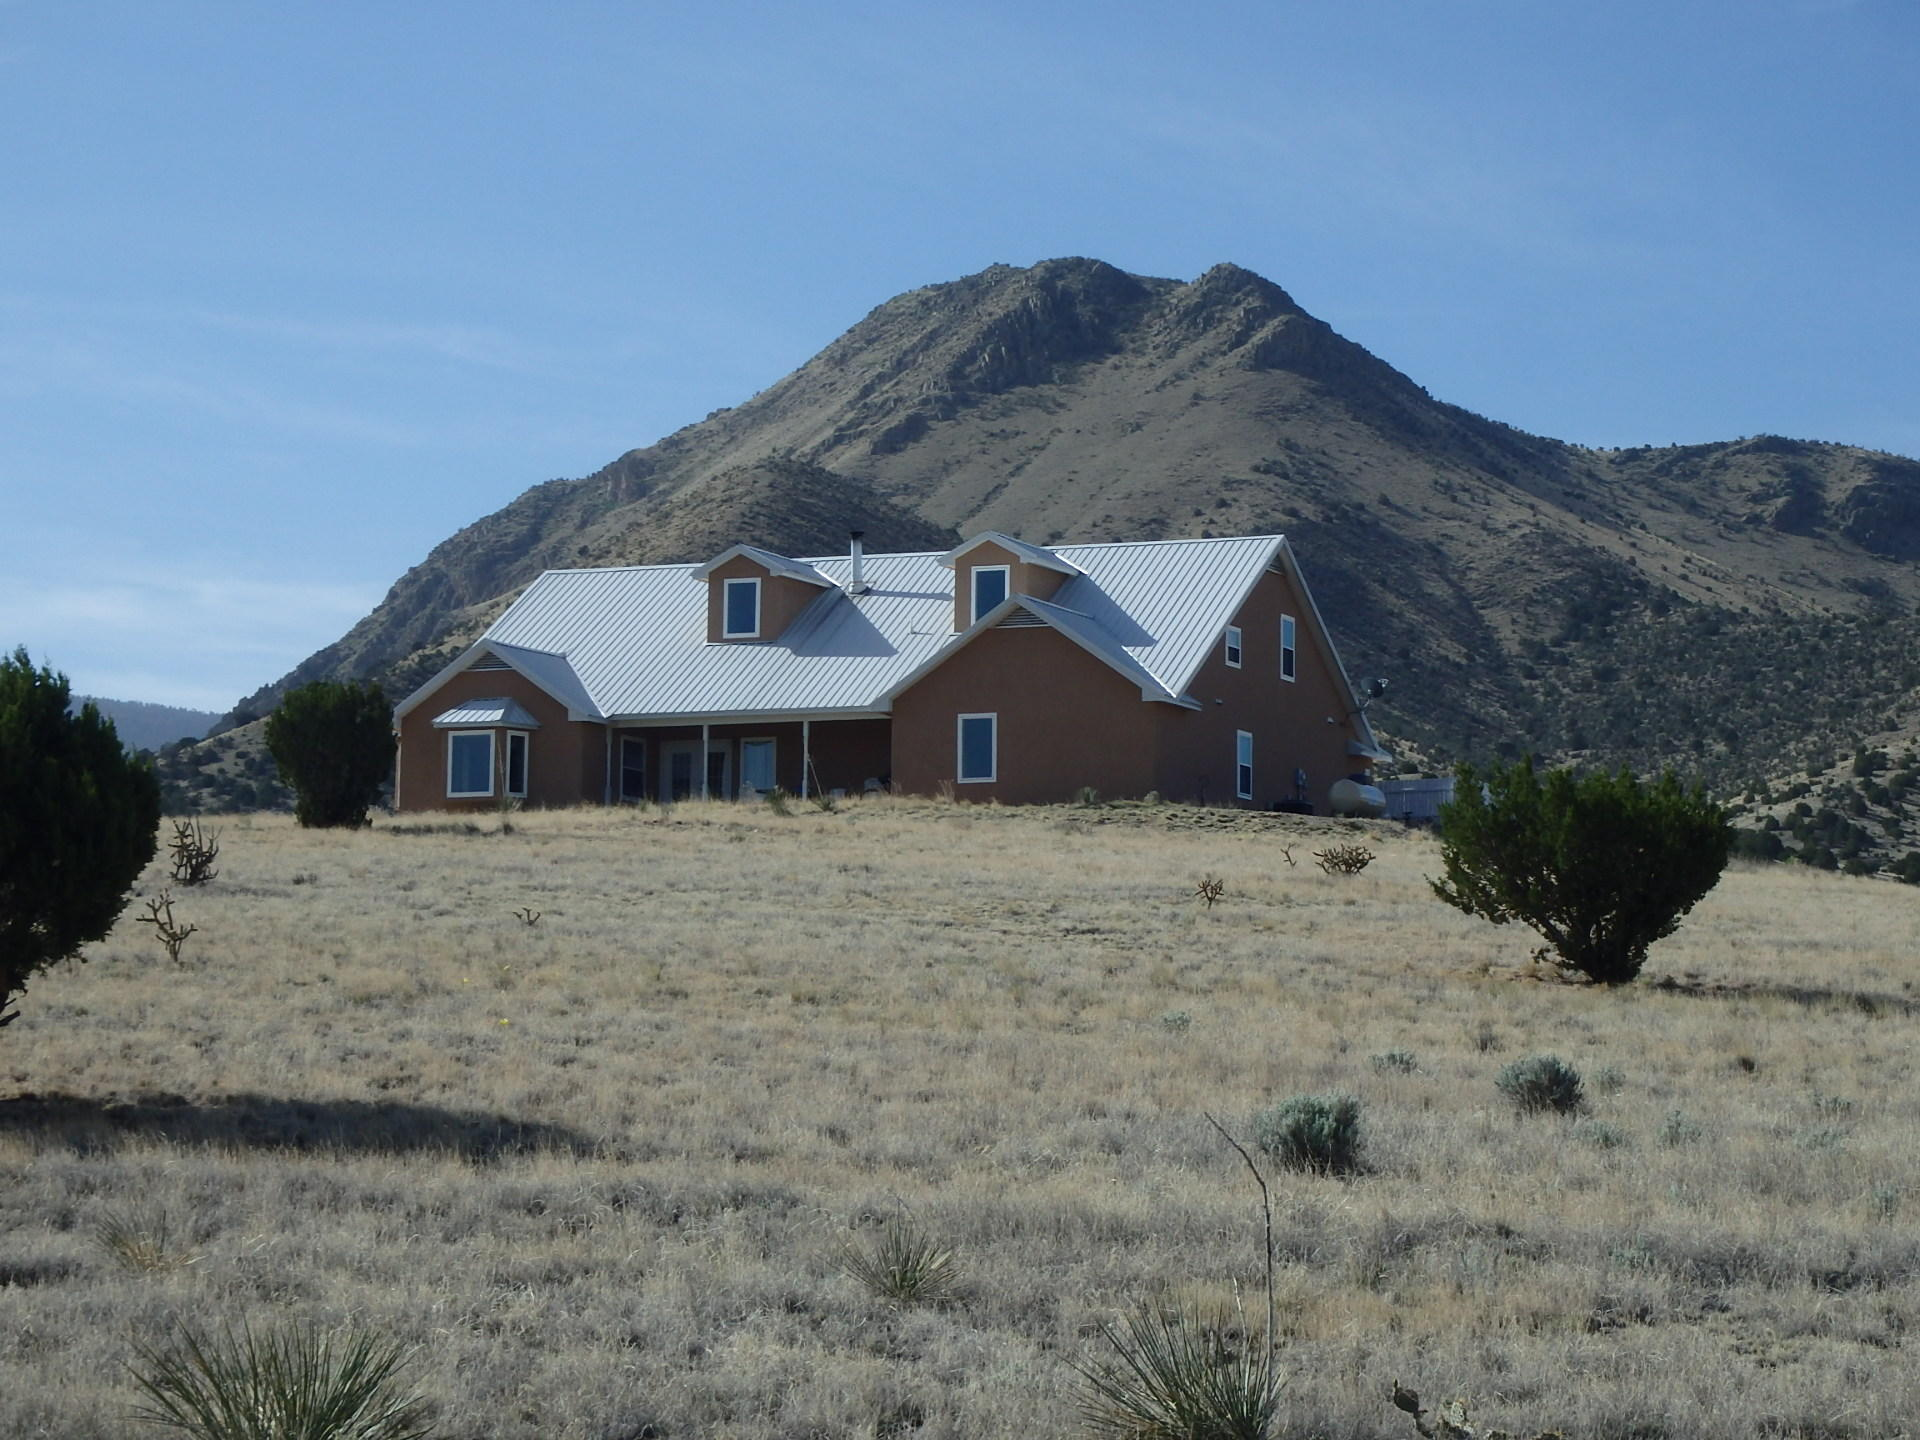 1100 10th Street, Magdalena, NM 87825 - Magdalena, NM real estate listing